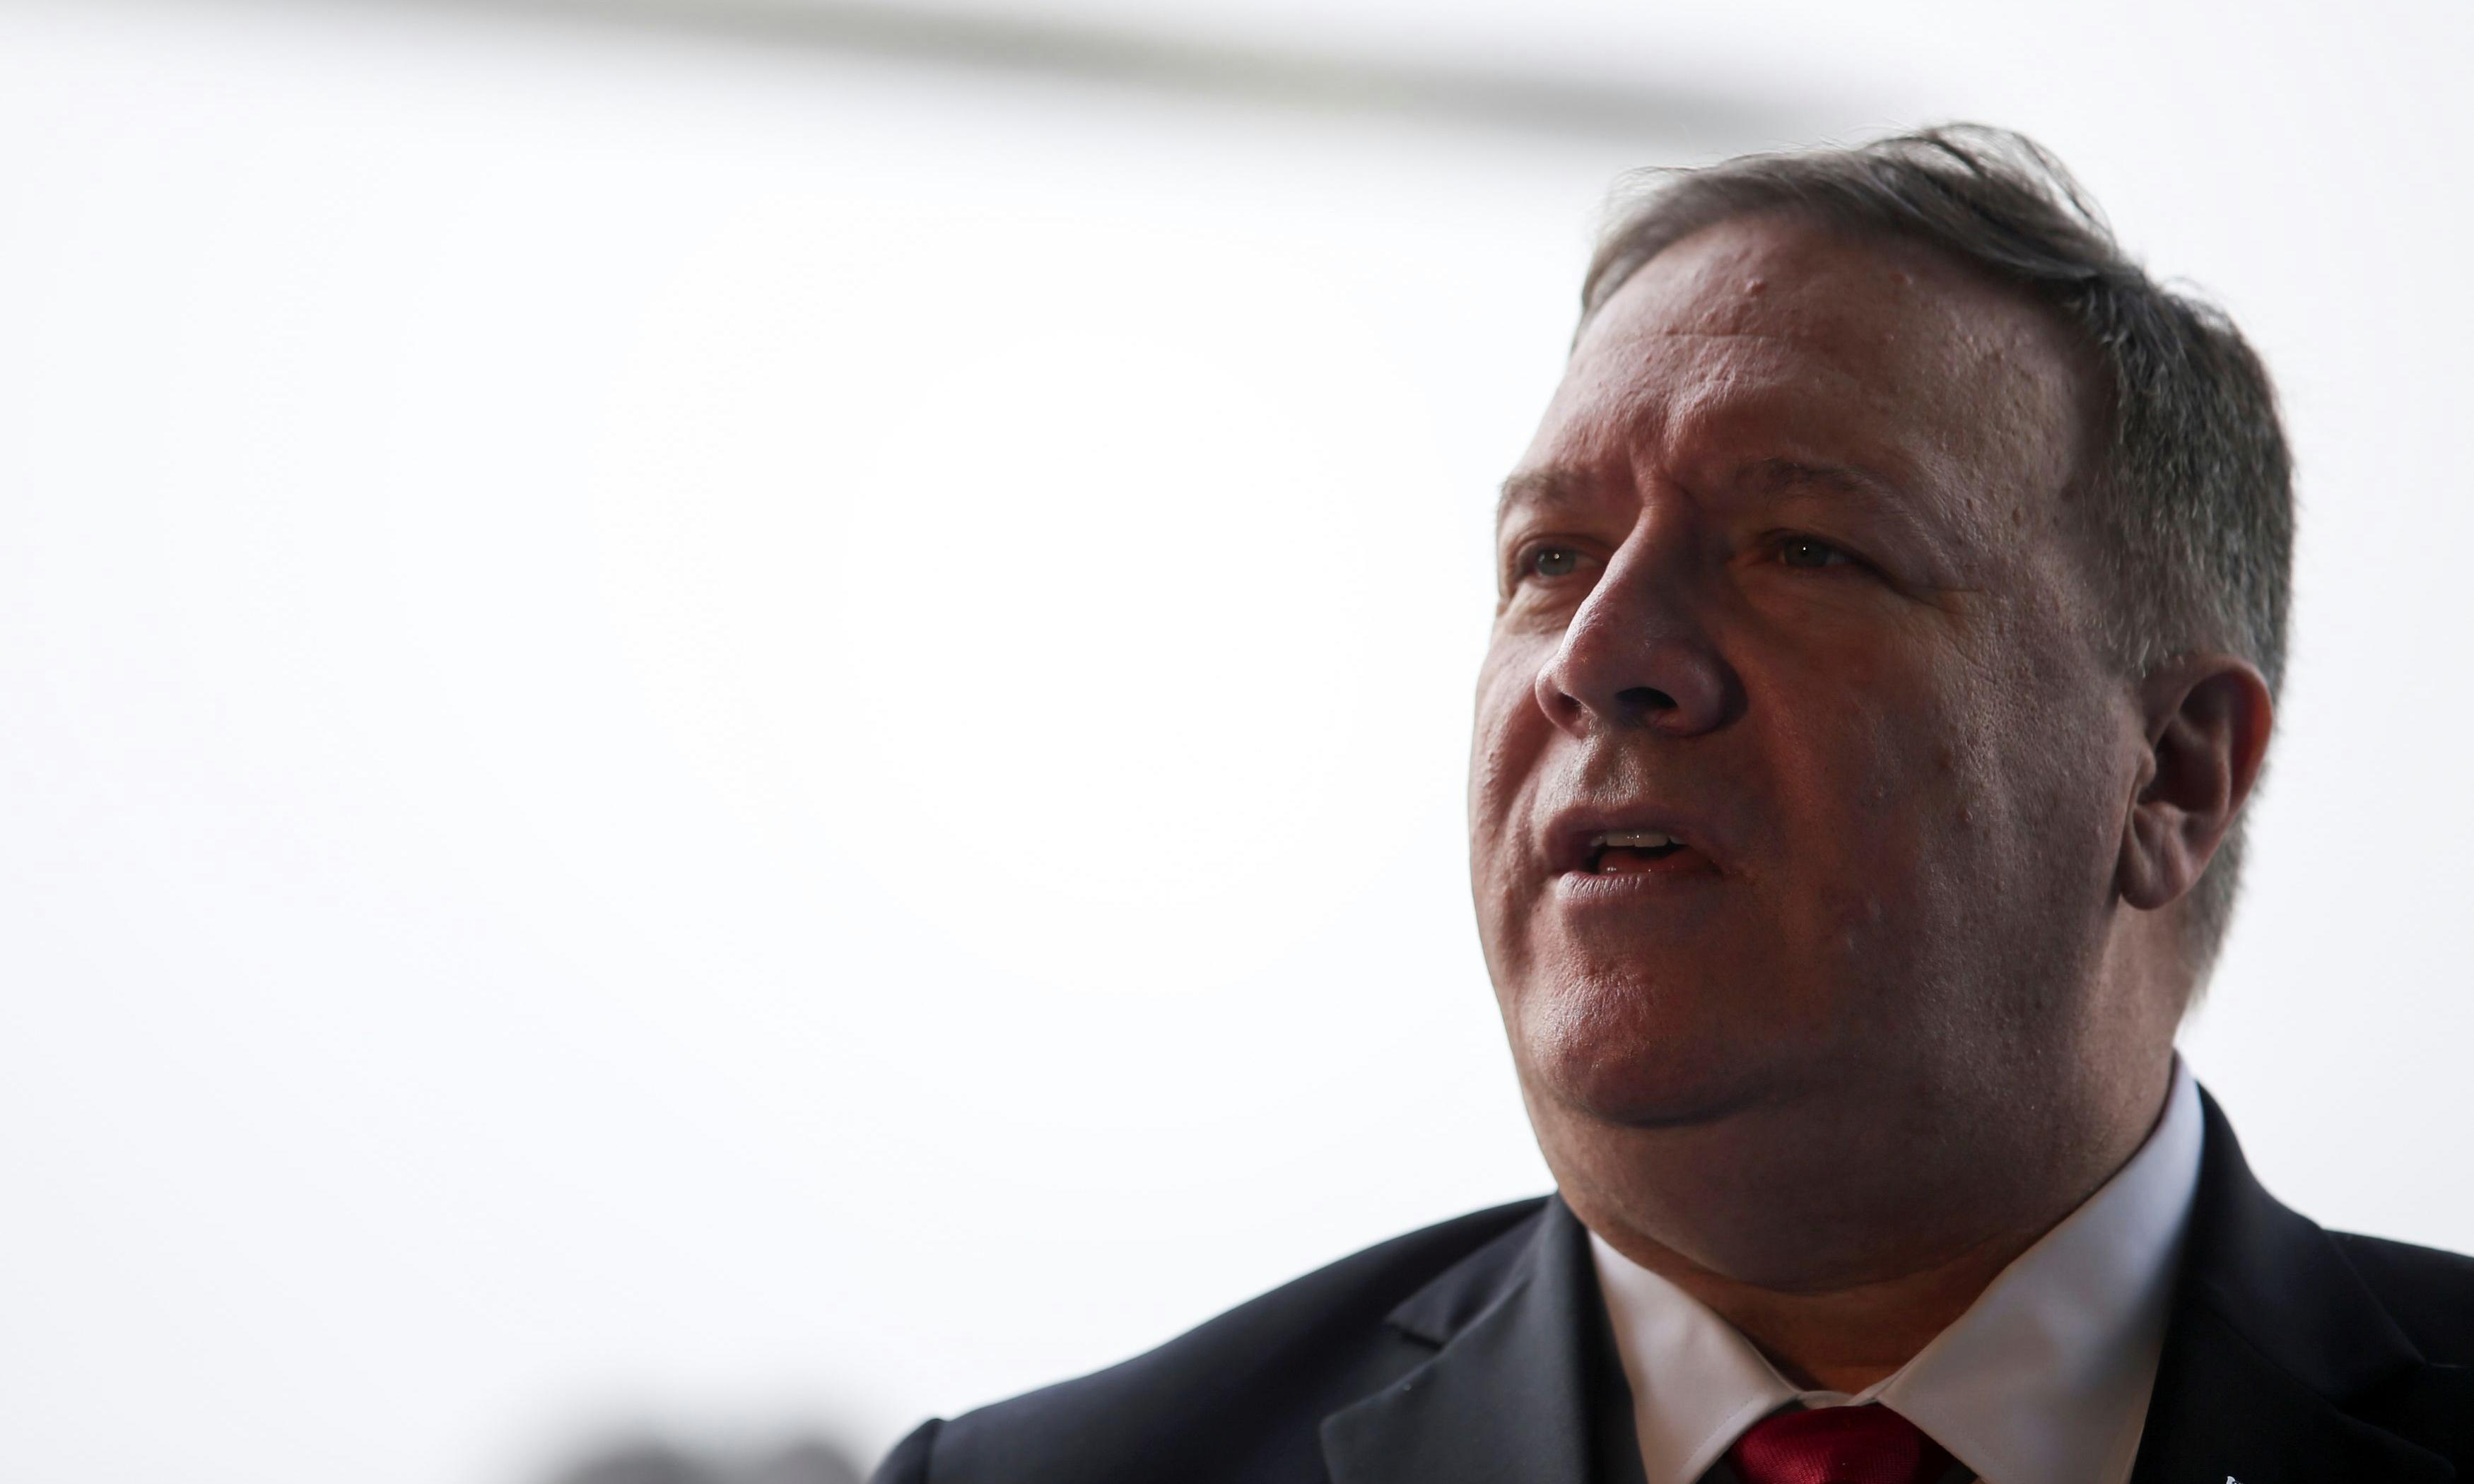 NPR host says Pompeo shouted 'F-word' tirade when she asked about Ukraine